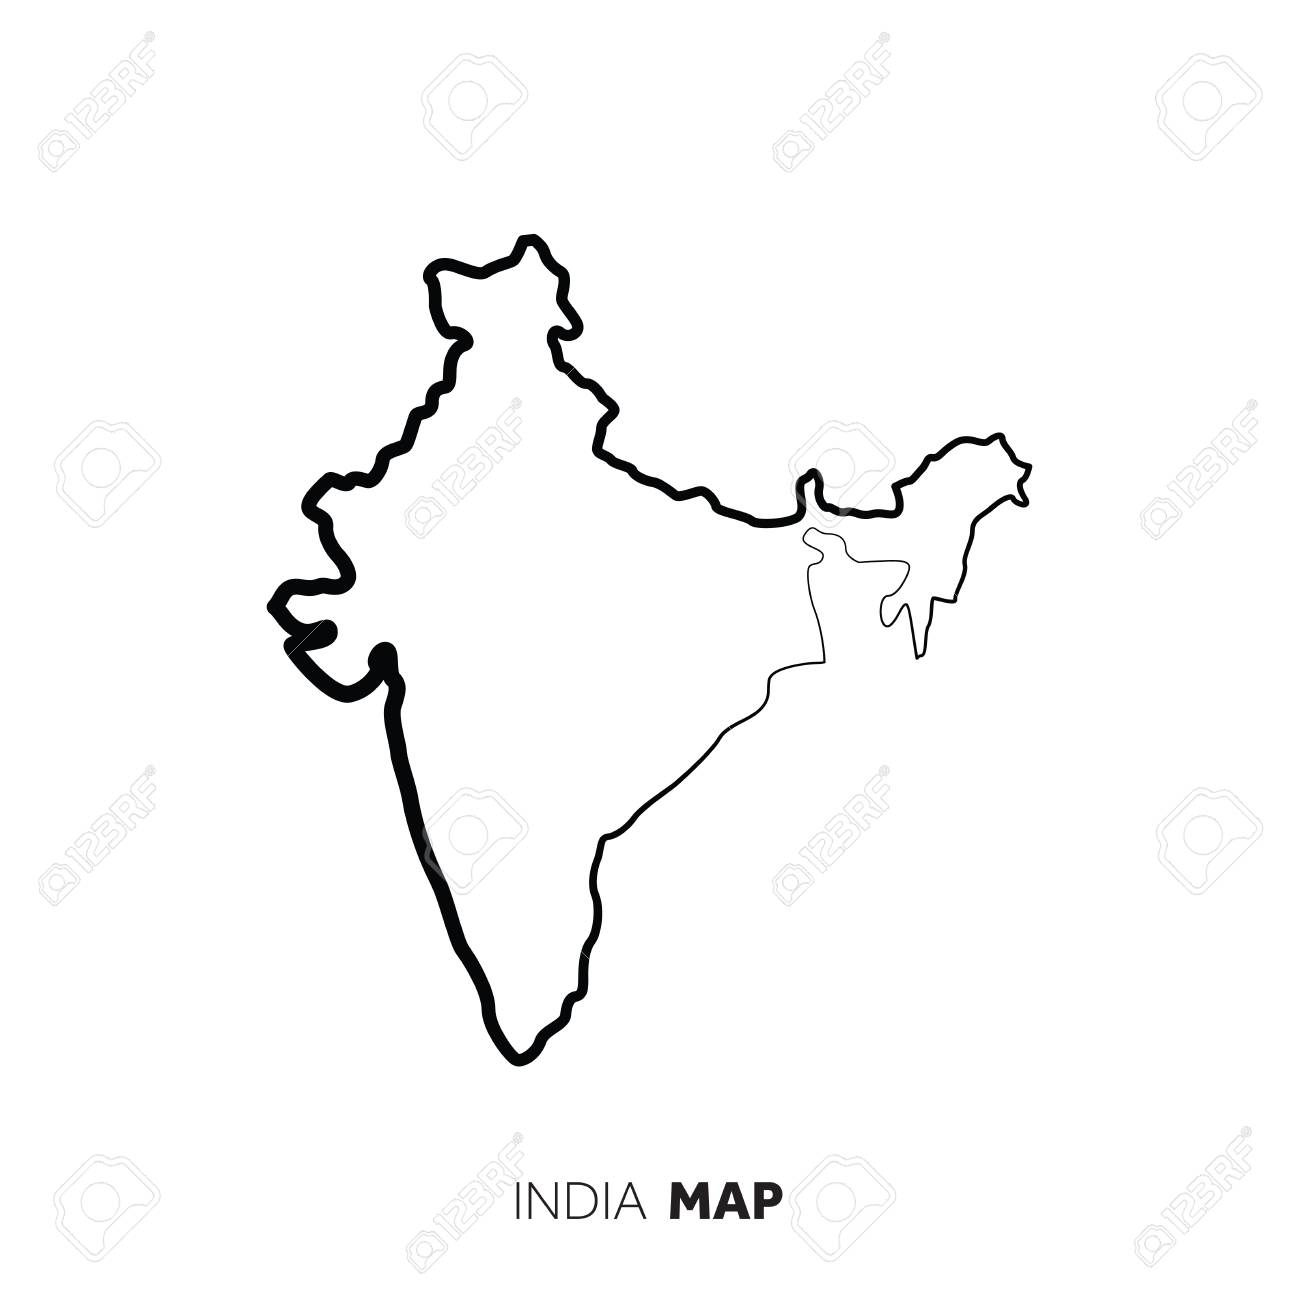 India vector country map outline. Black line on white background